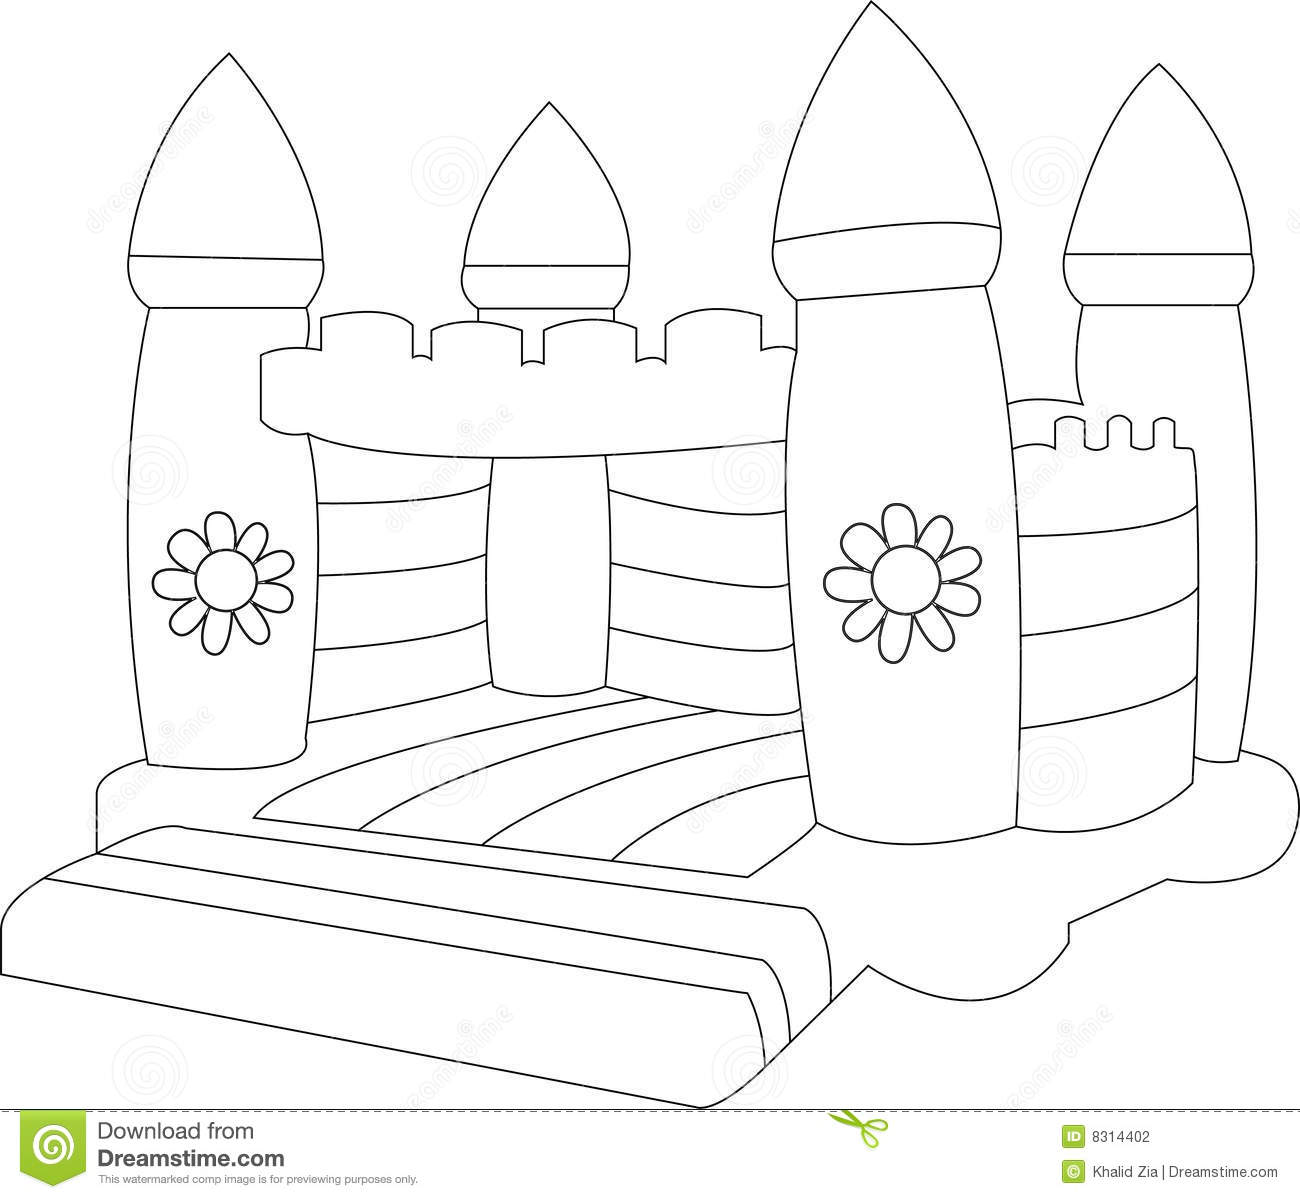 Bouncy House Coloring Page - Handipoints | Coloring Page Bounce House  | title